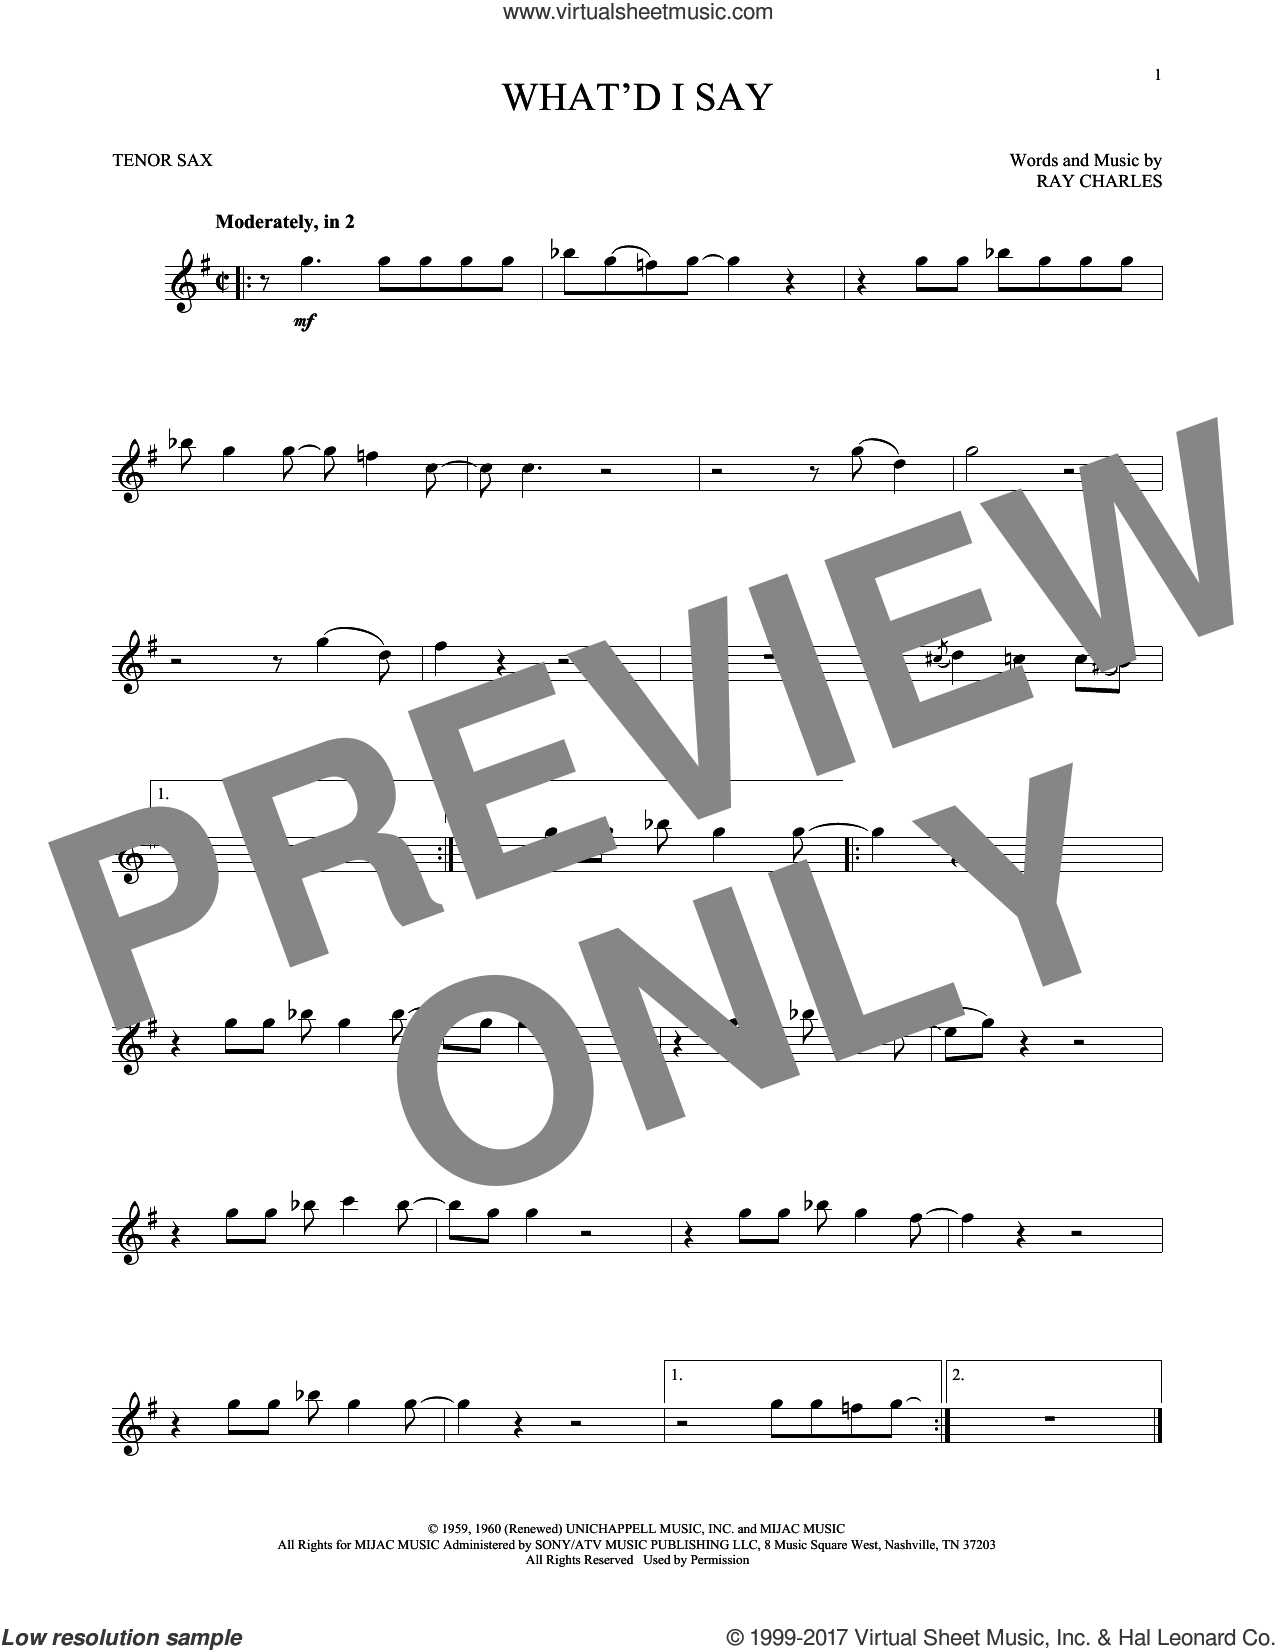 What'd I Say sheet music for tenor saxophone solo by Ray Charles, intermediate skill level